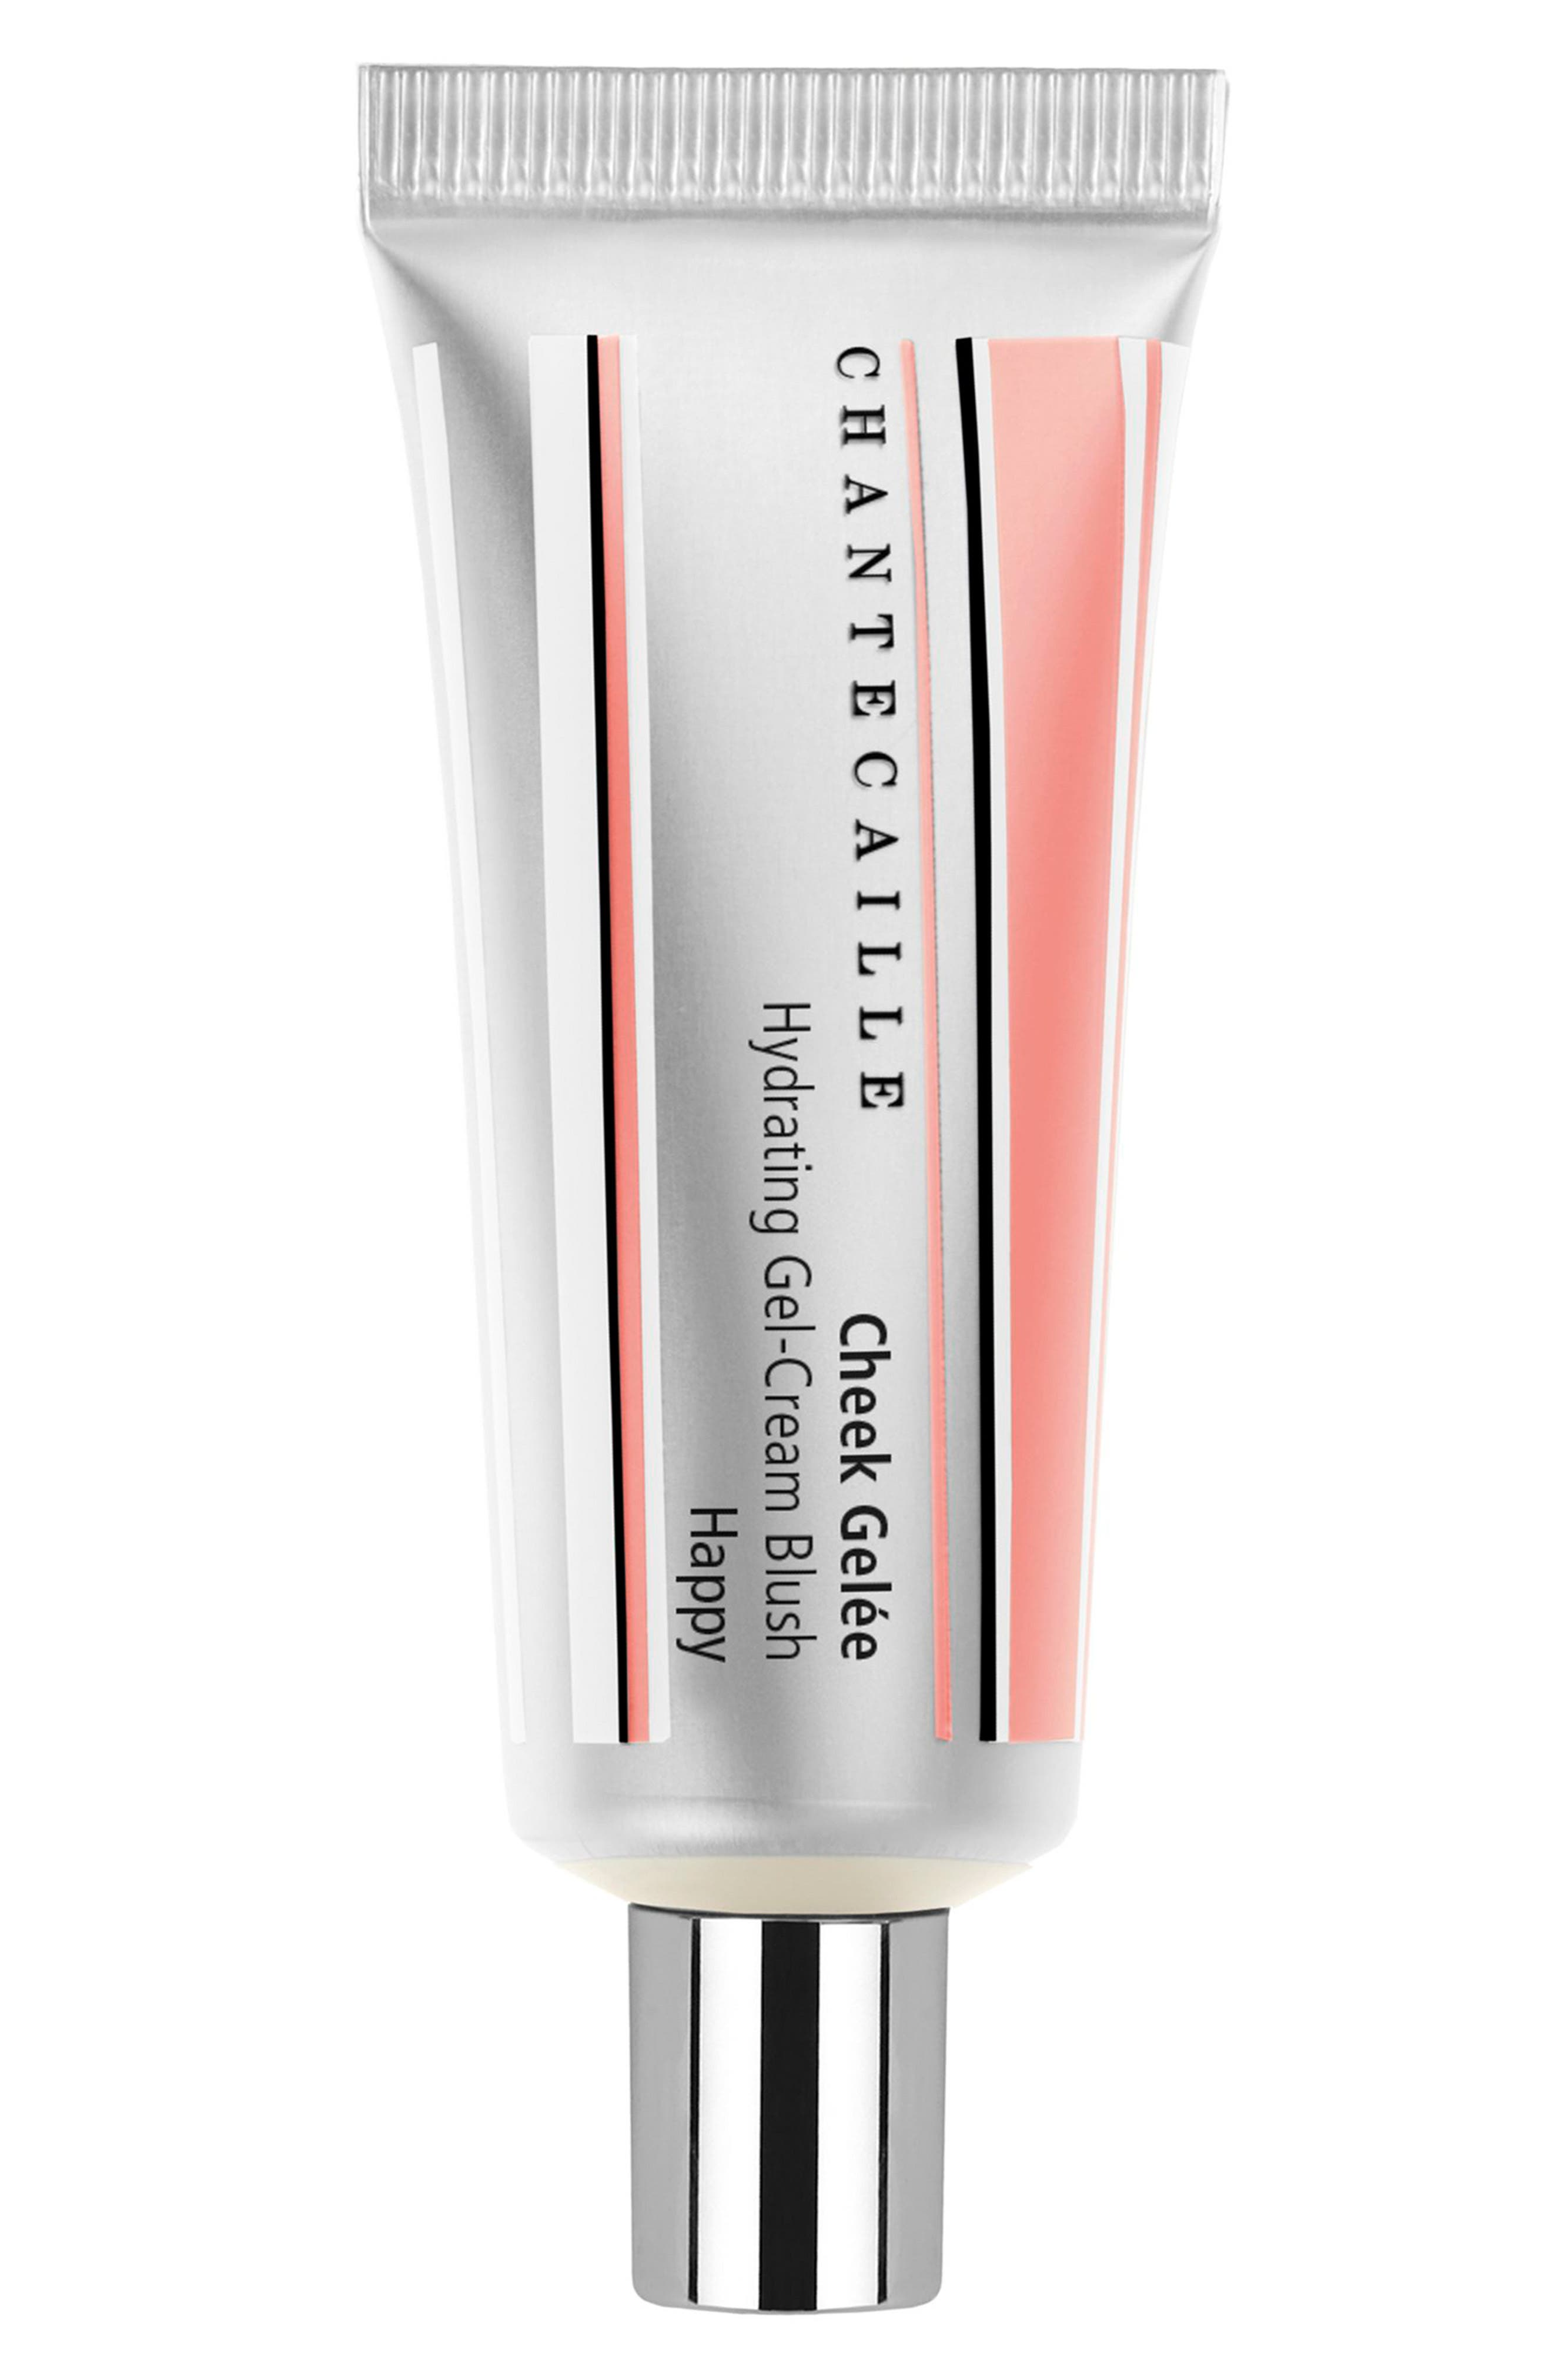 CHANTECAILLE Cheek Gelée Hydrating Gel-Cream Blush, Main, color, HAPPY